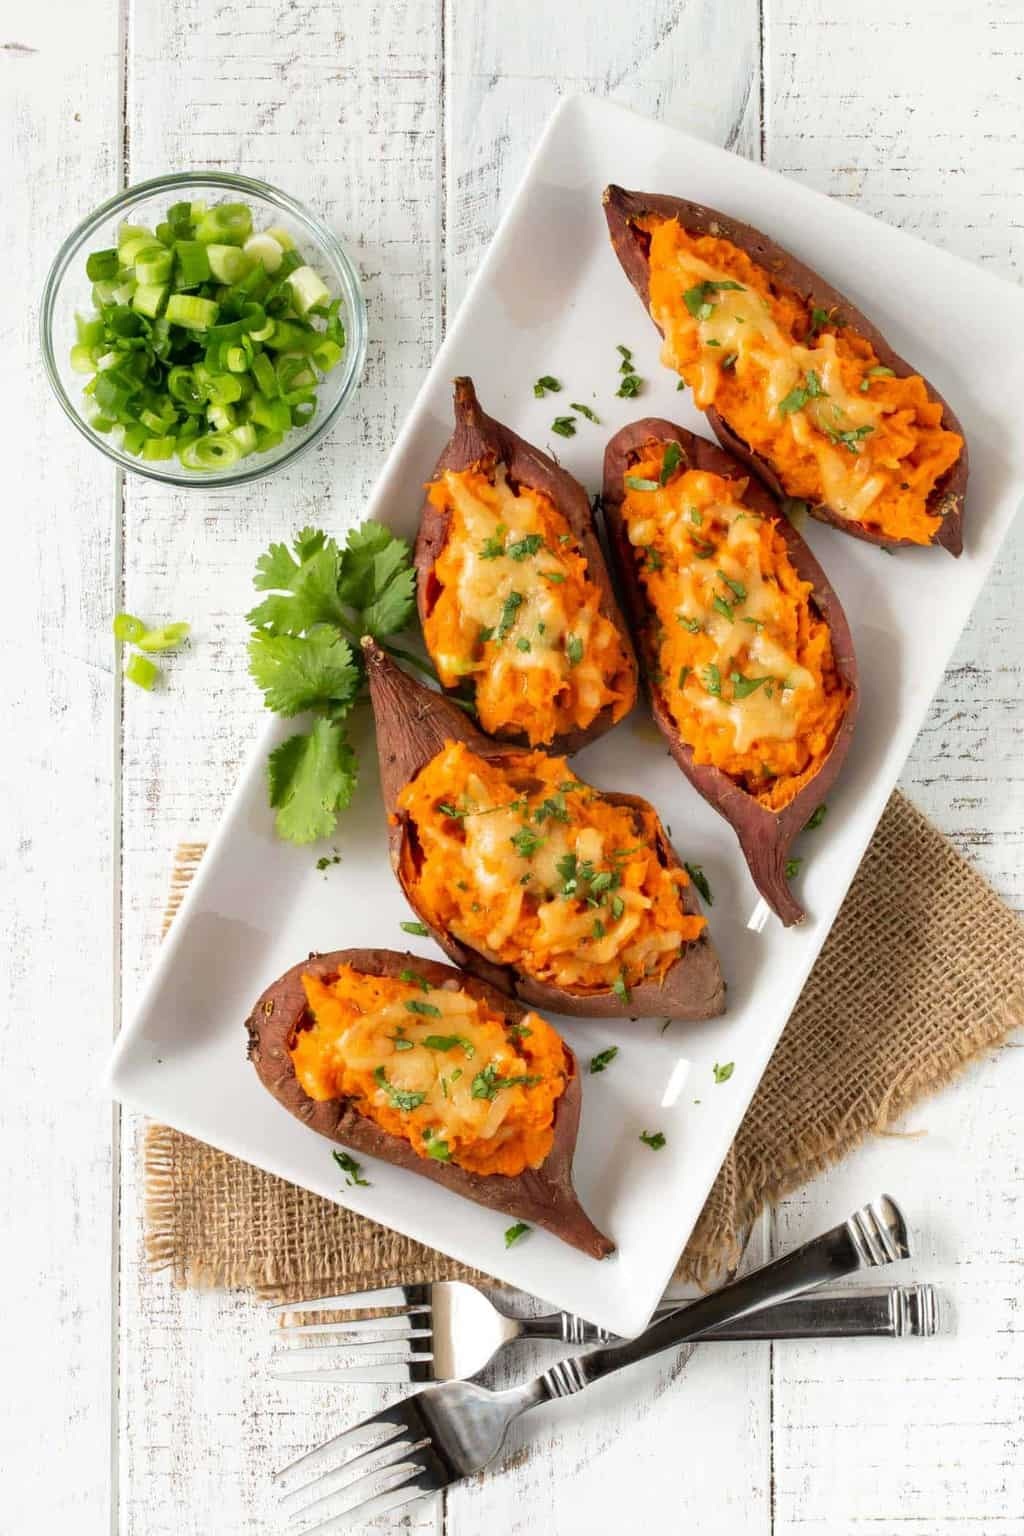 Top down image of Cheesy Chipotle Twice Baked Sweet Potatoes on white tray.